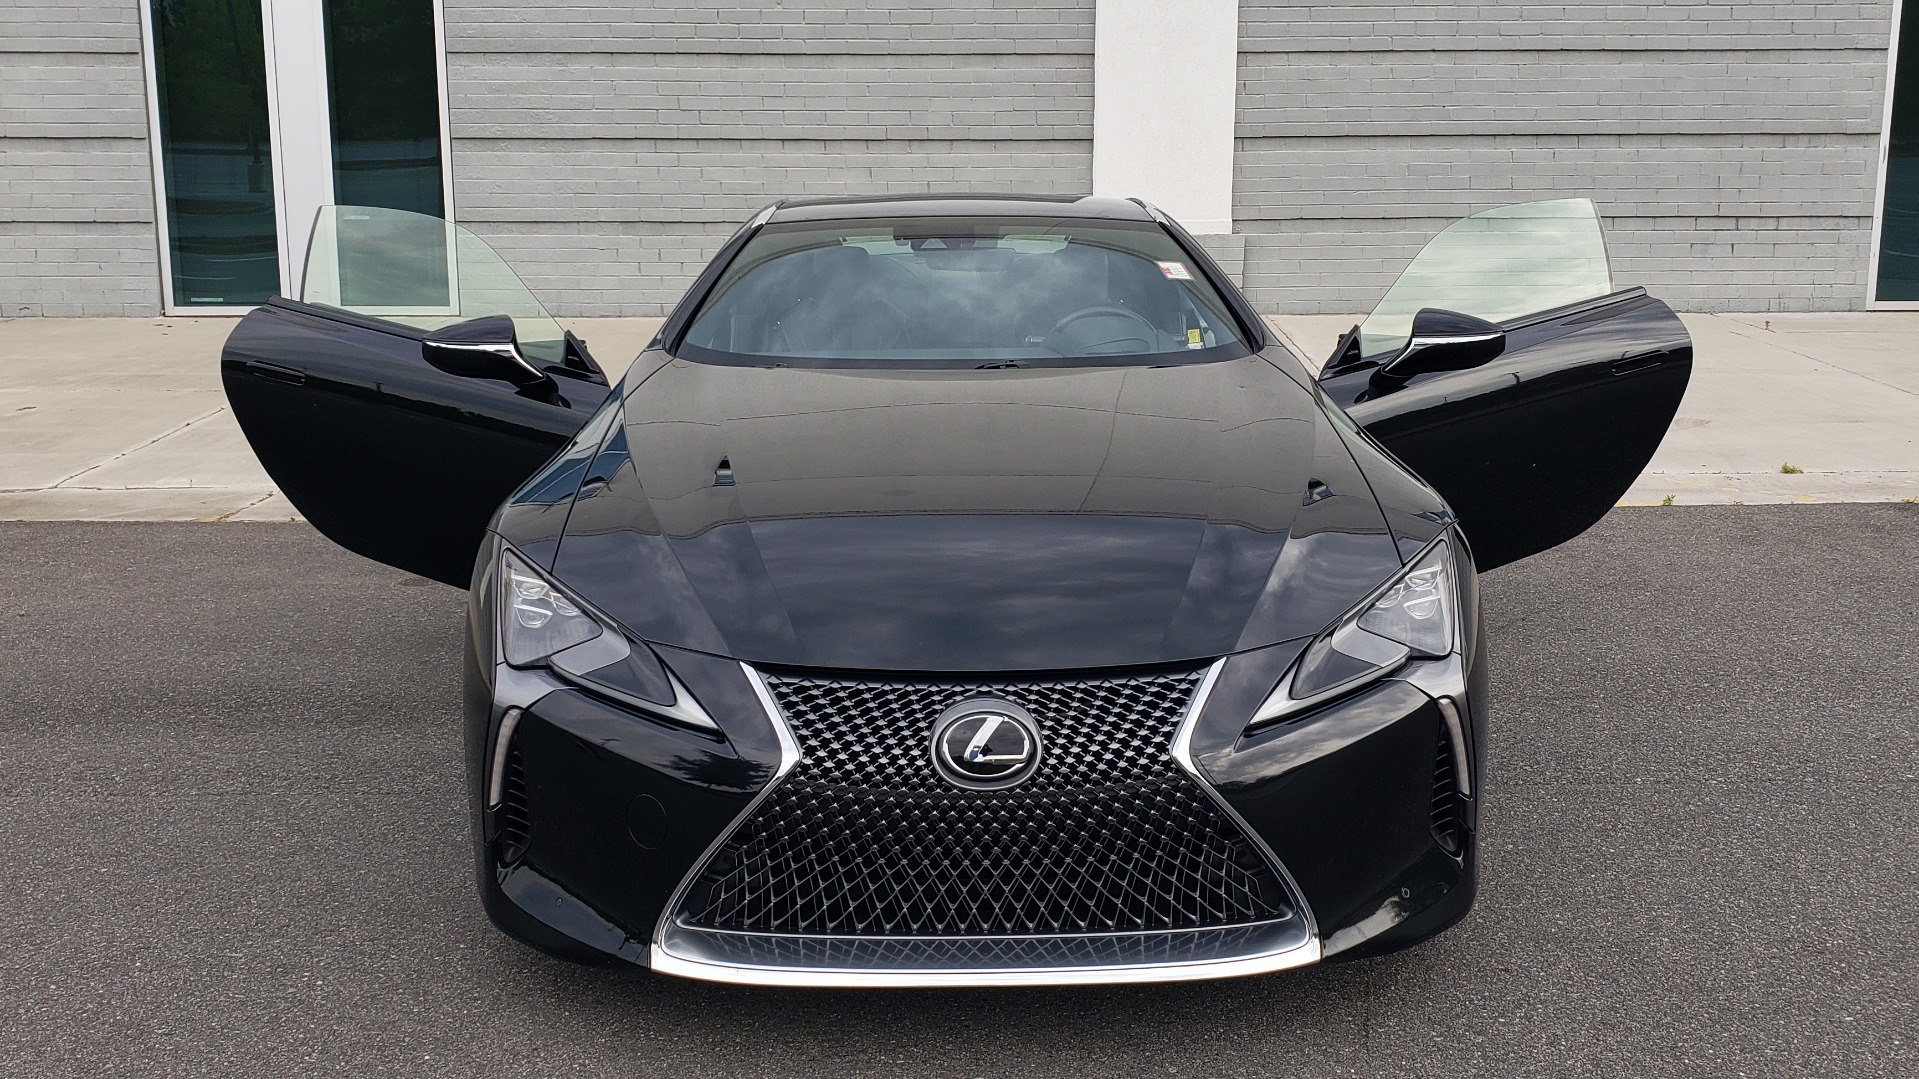 Used 2018 Lexus LC 500 COUPE / 5.0L V8 (471HP) / 10-SPD AUTO / HUD / SUNROOF / REARVIEW for sale Sold at Formula Imports in Charlotte NC 28227 26